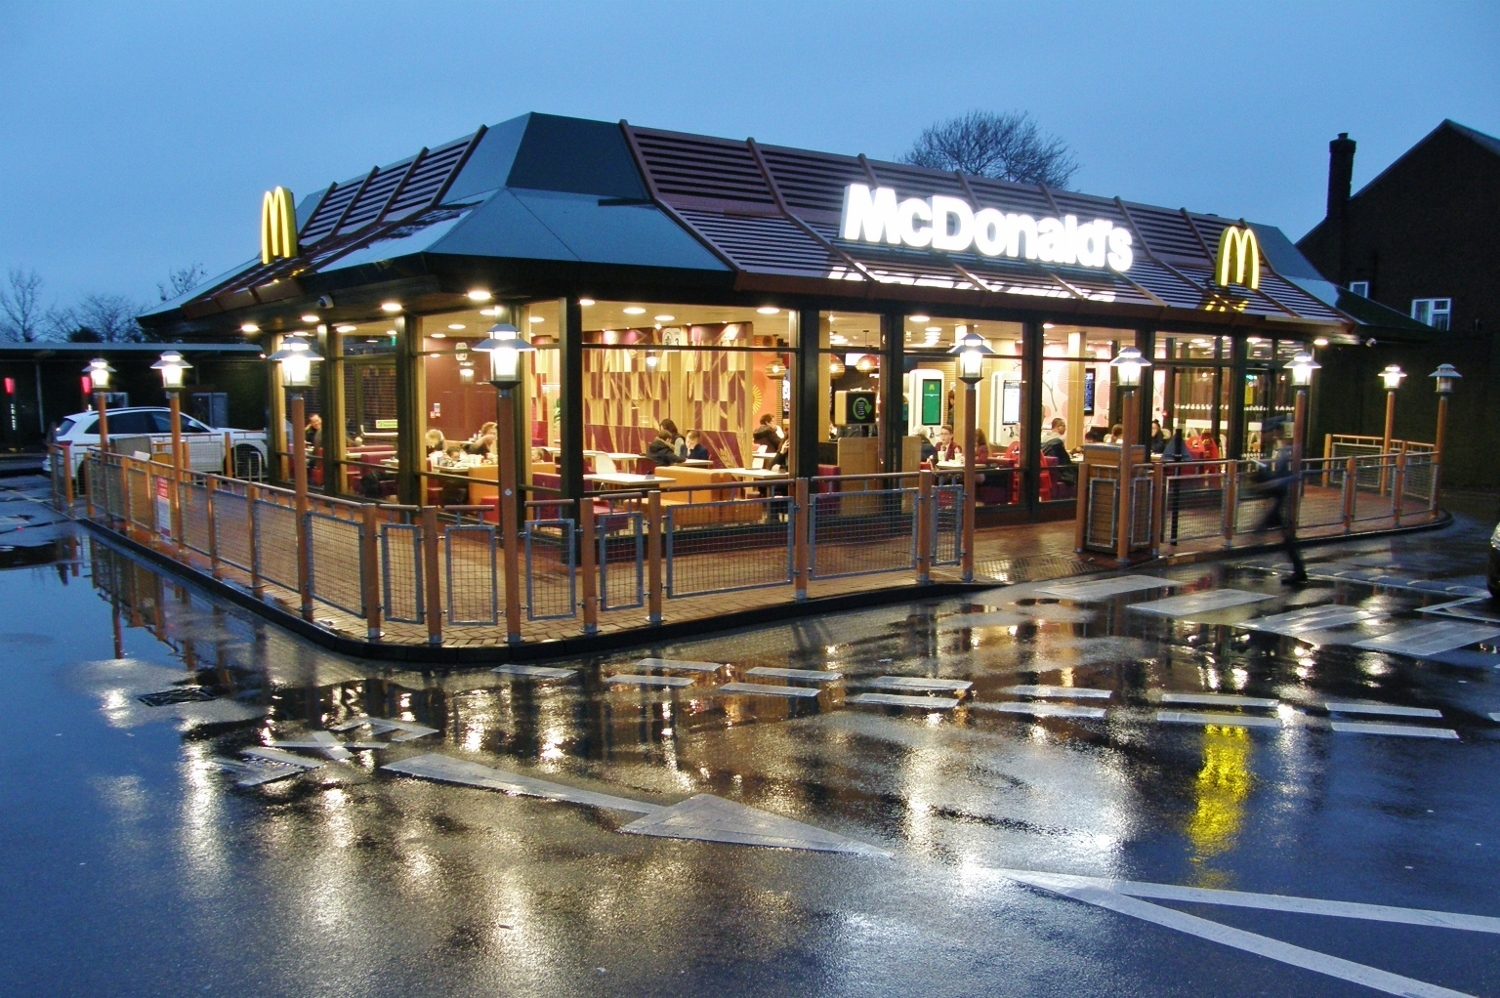 McDonald's restaurant in London Road, North Cheam. Photo: Richard Johnson